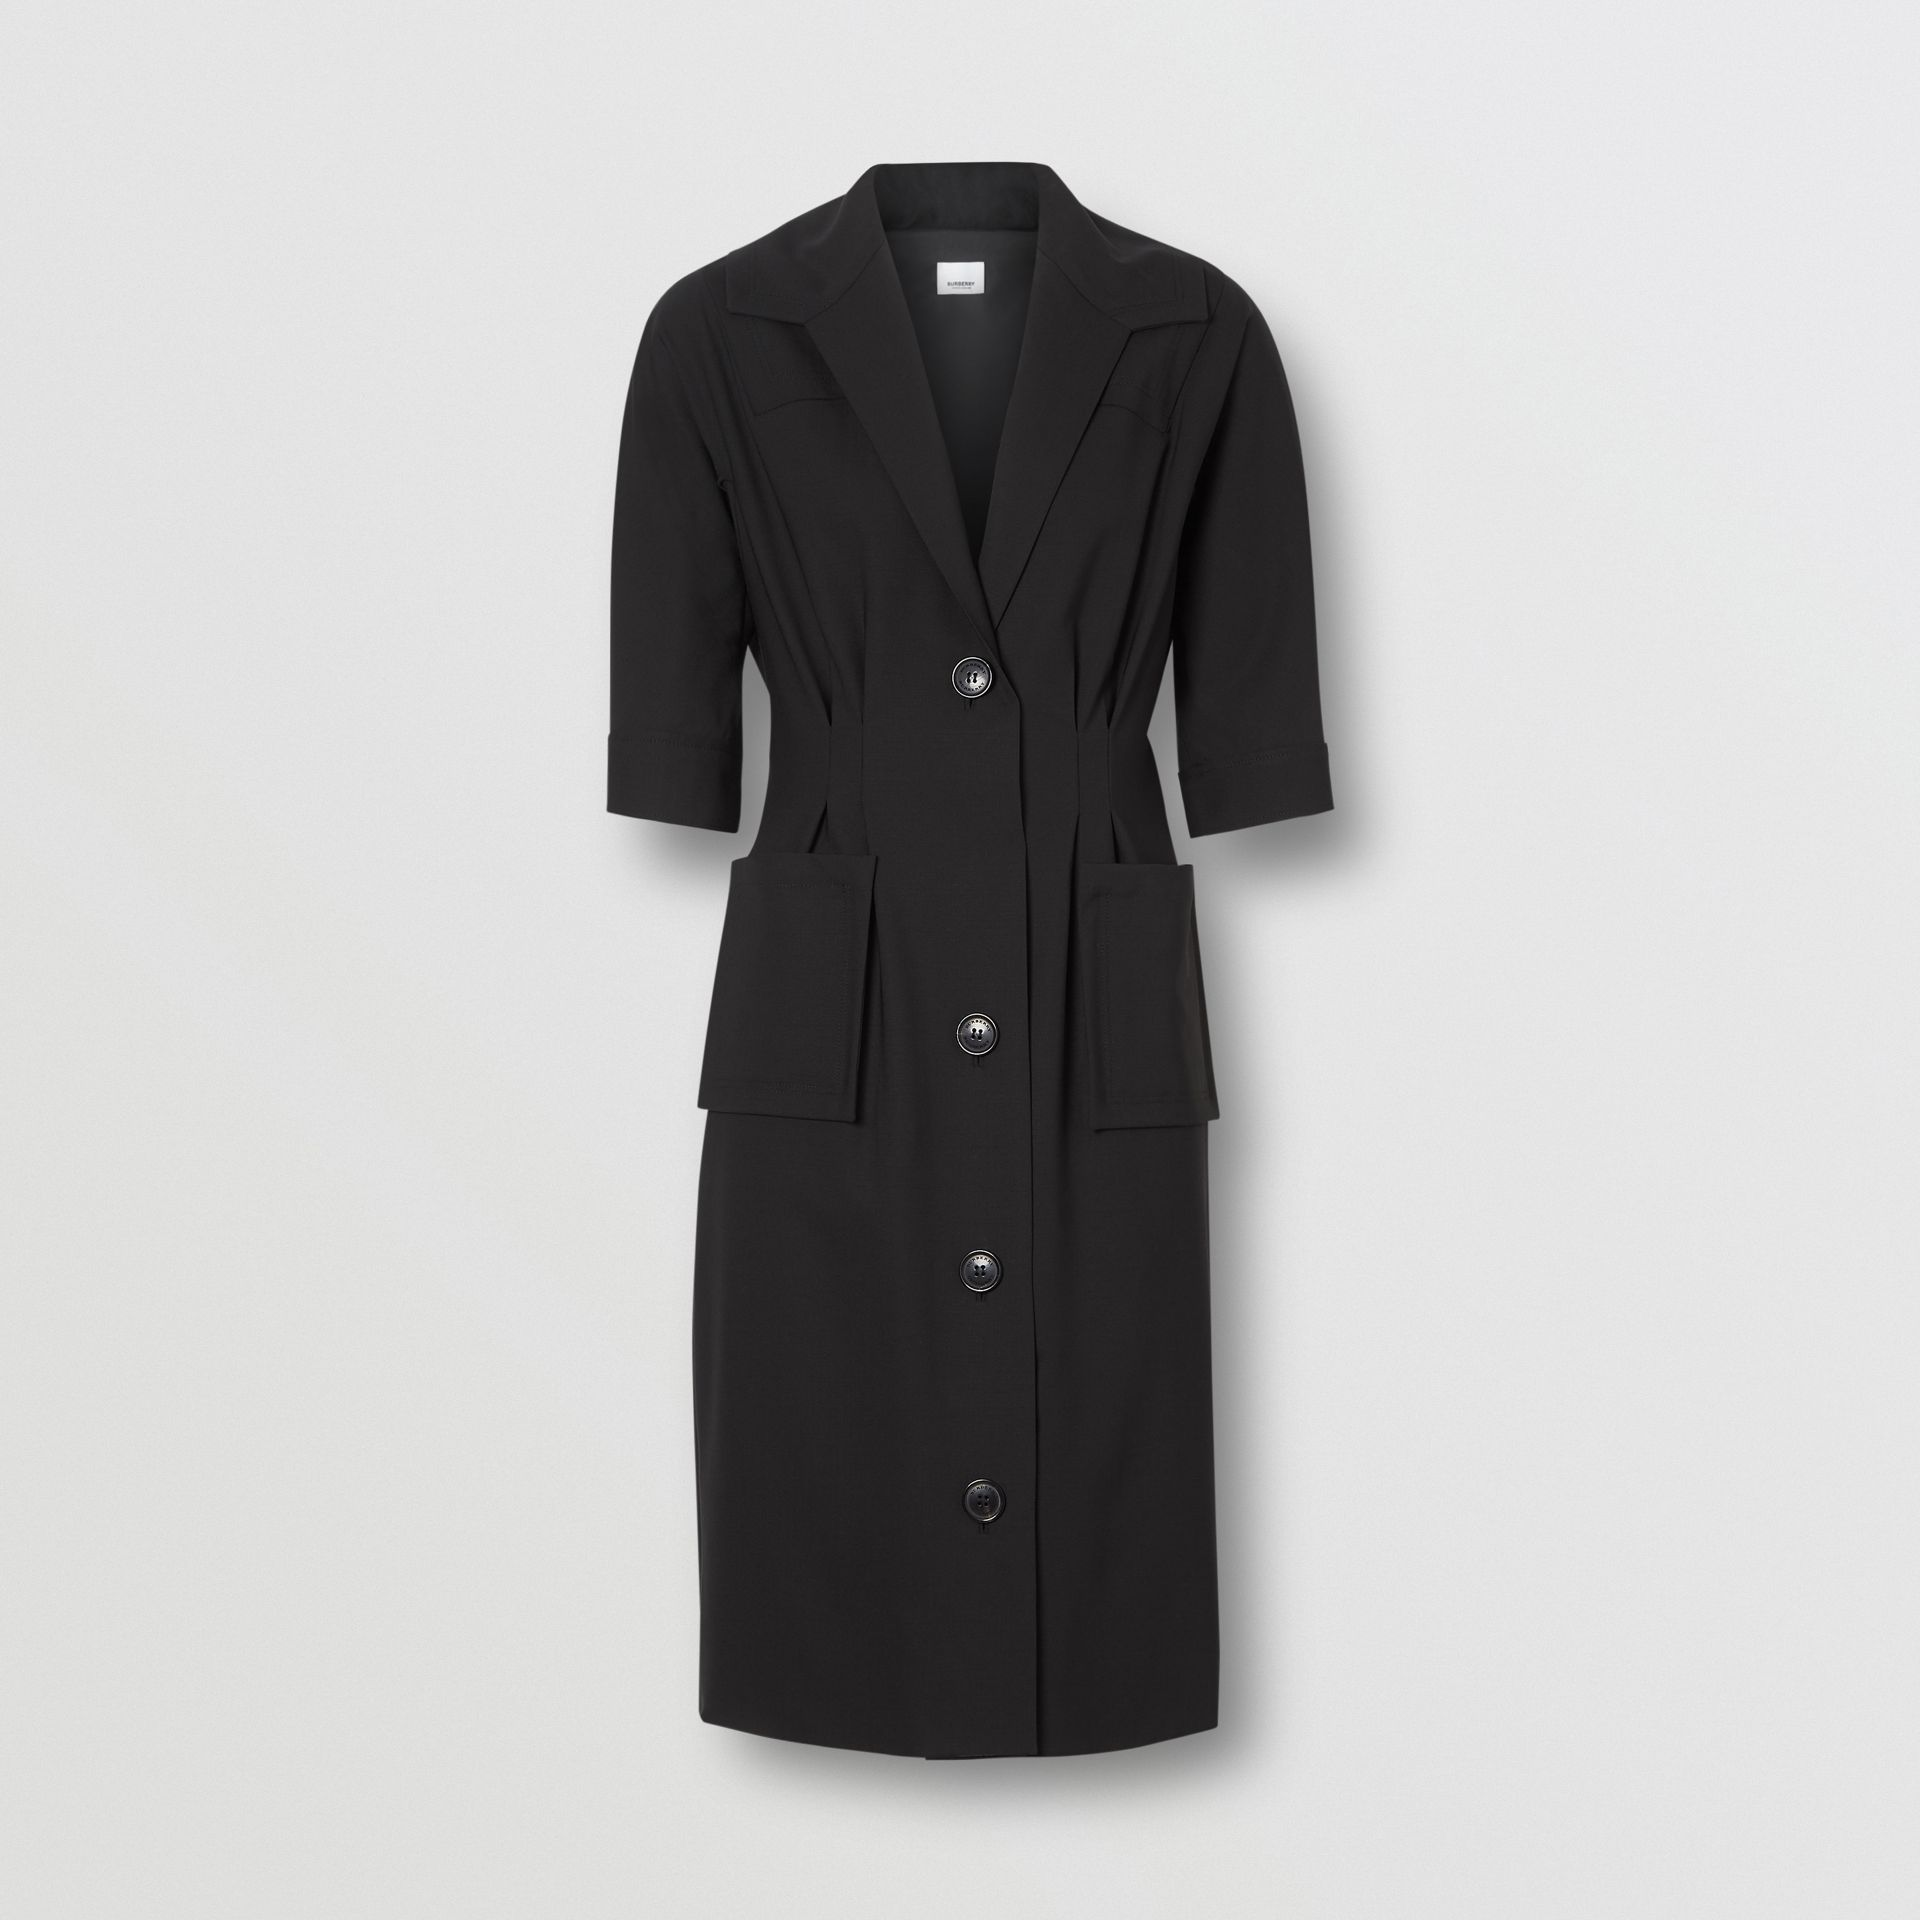 Short-sleeve Stretch Wool Dress in Black - Women | Burberry Hong Kong S.A.R - gallery image 3